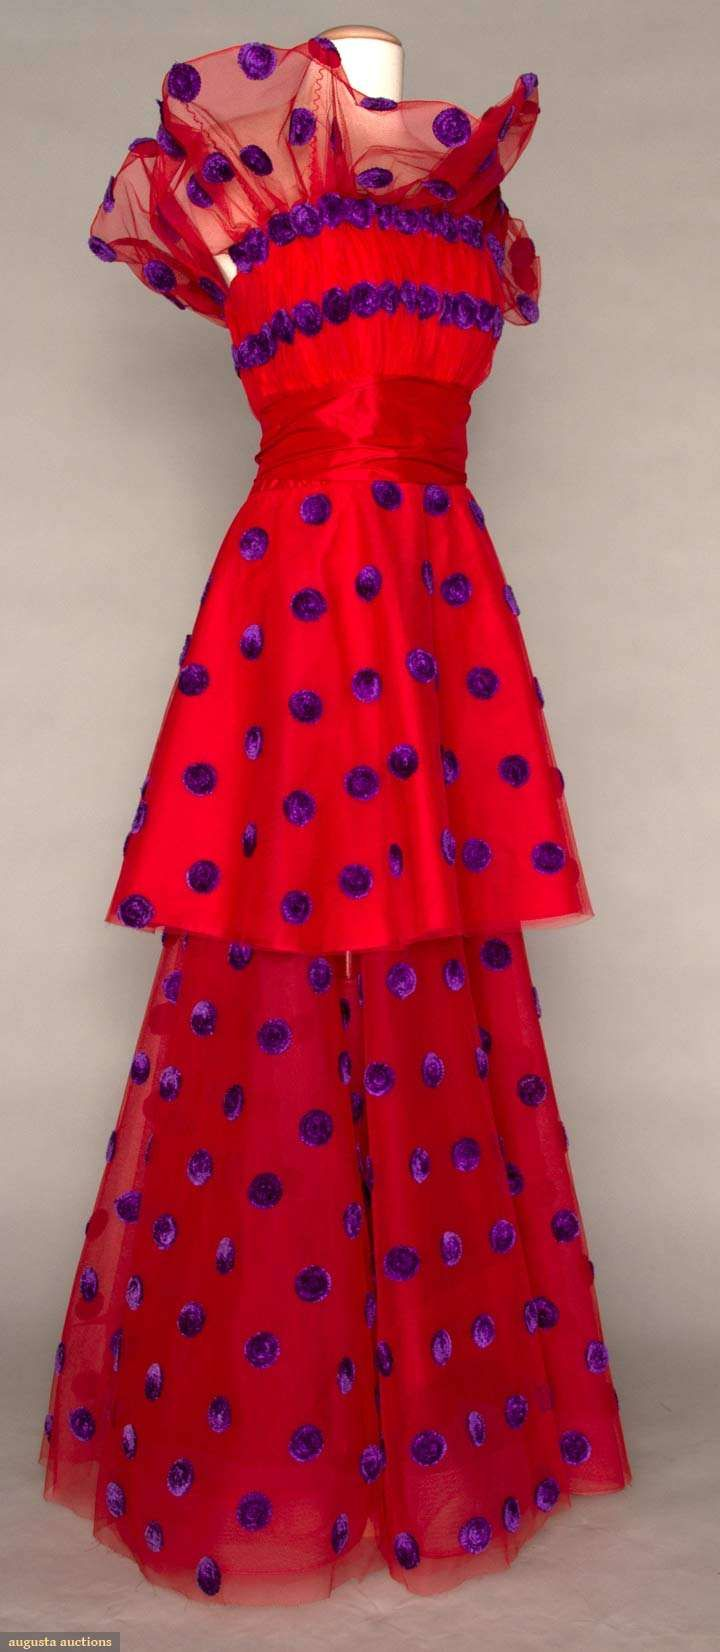 Augusta Auctions - Scaasi couture gown - 1979 - This is the perfect New Years' gown, I think. :)